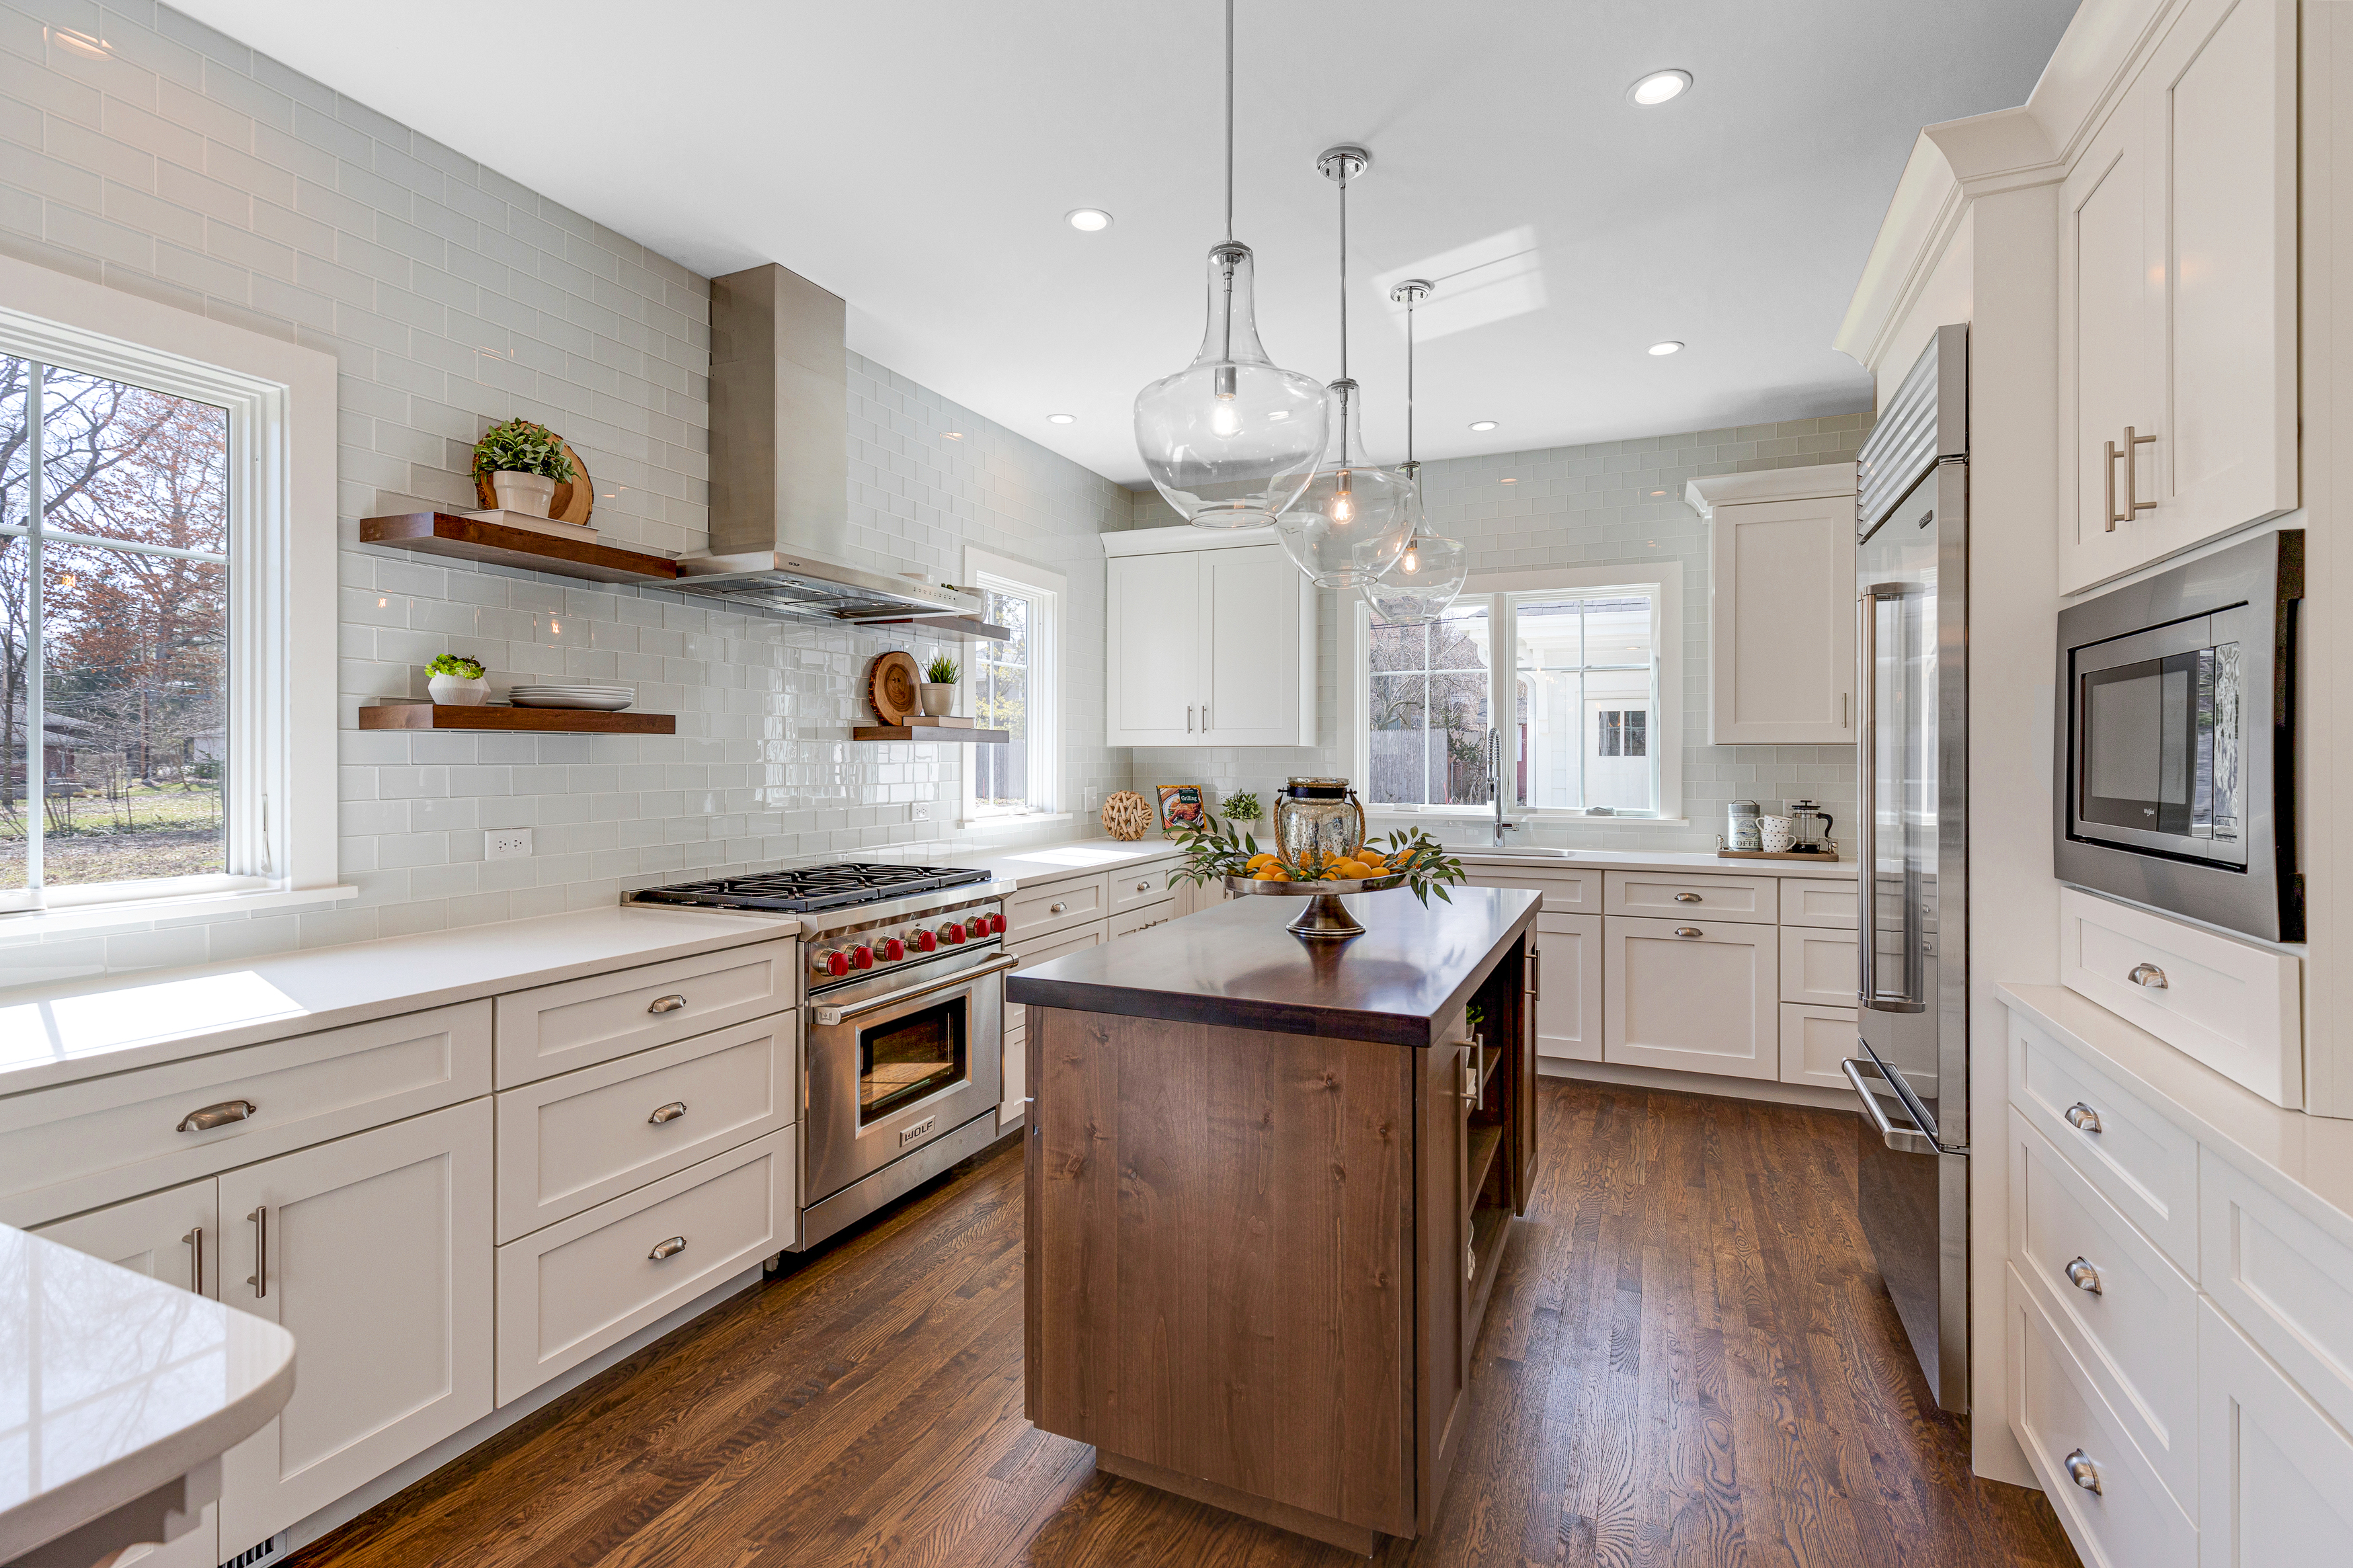 Kitchen with white cabinets, glass metro tiles, and featuring large glass pendant lights above a wood island